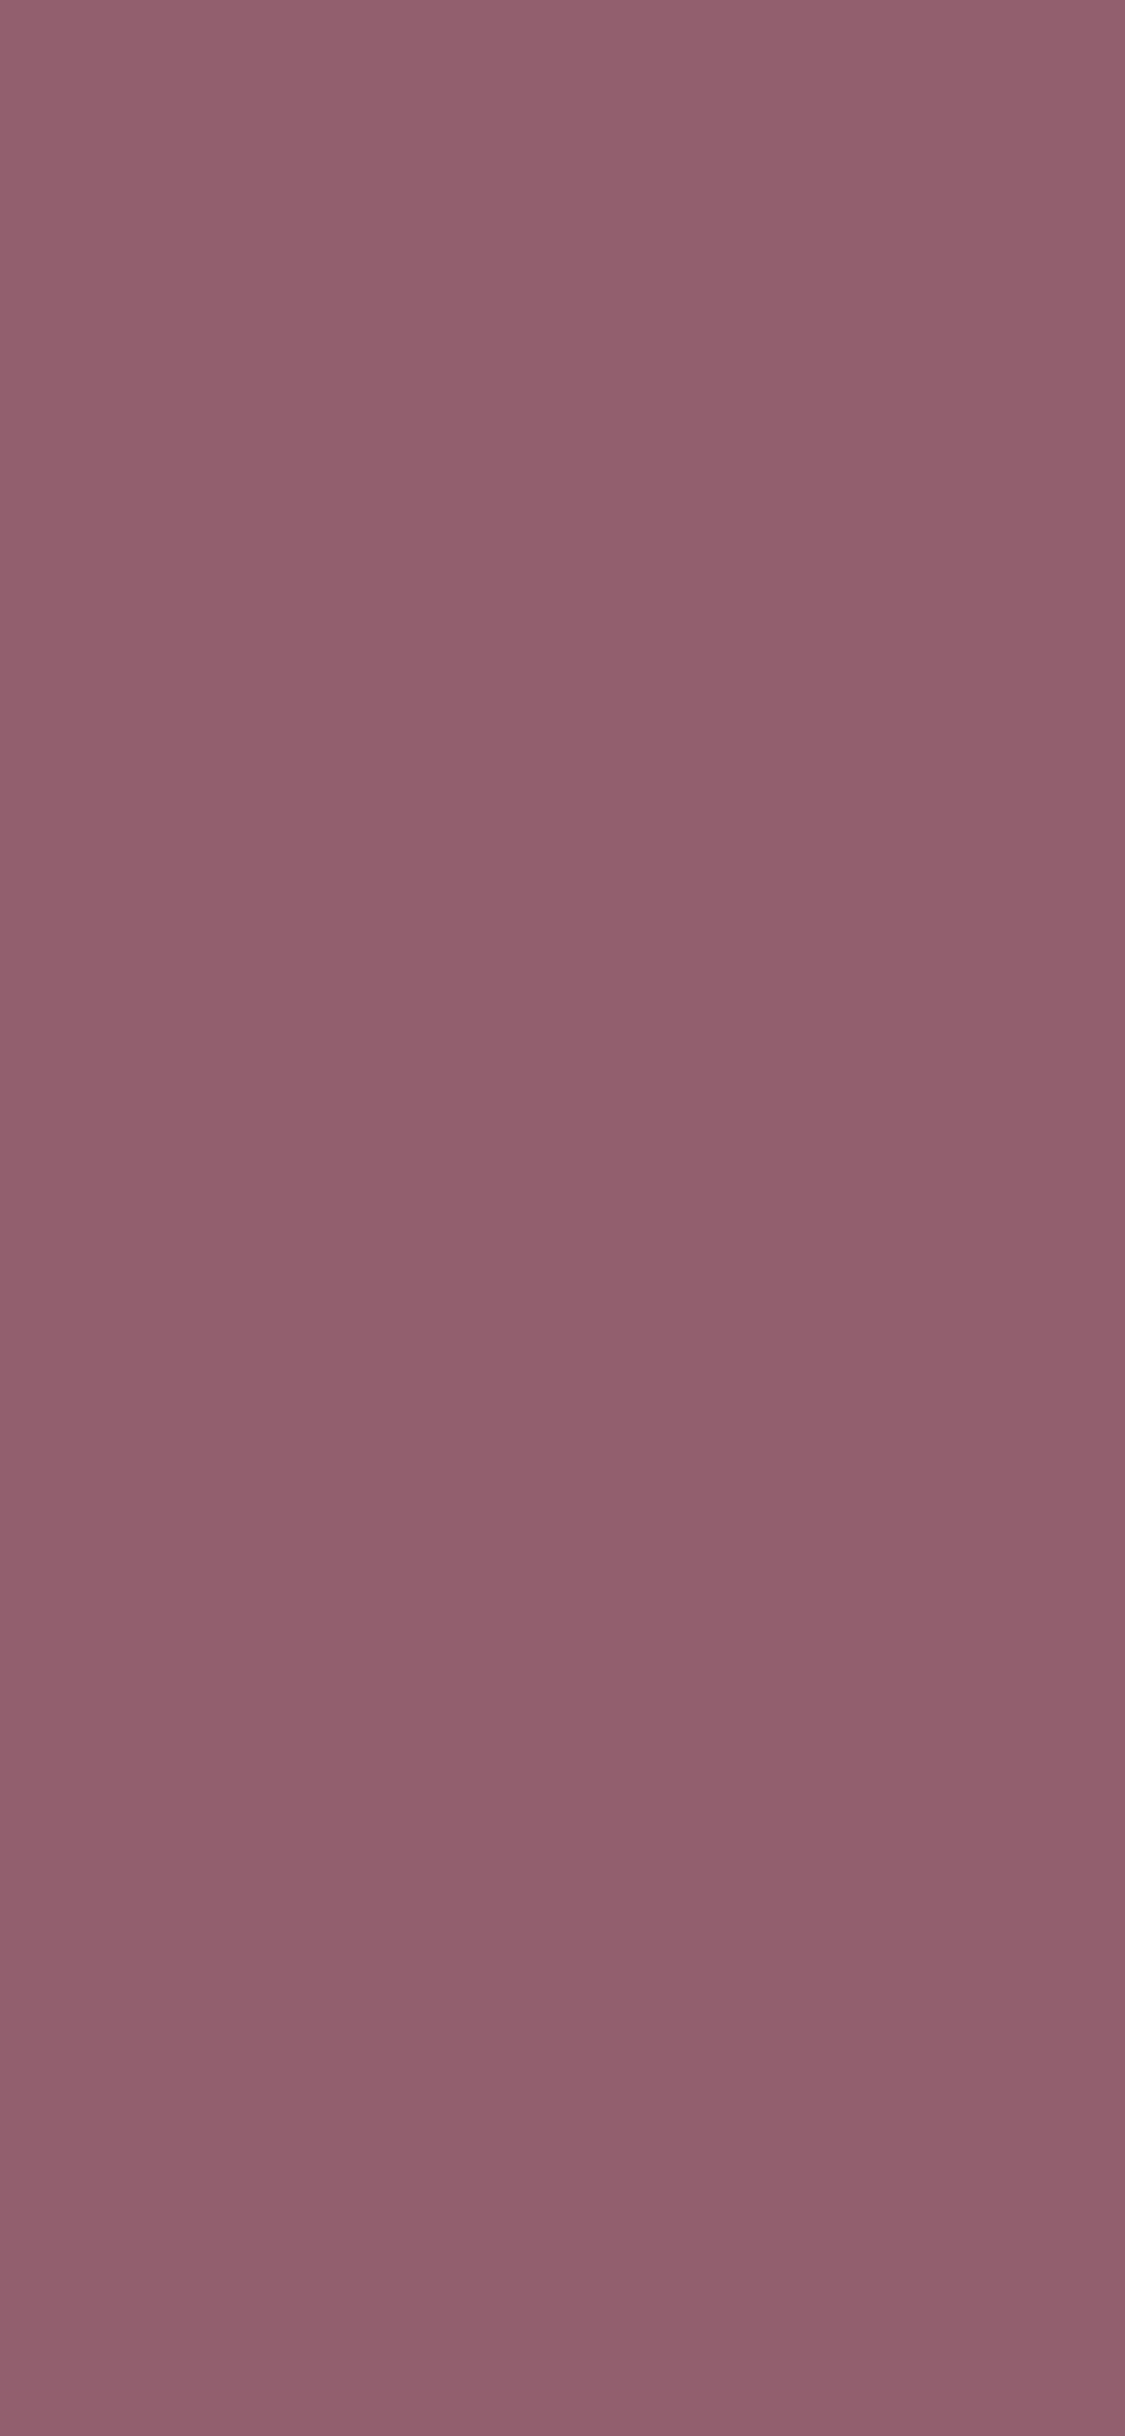 1125x2436 Mauve Taupe Solid Color Background